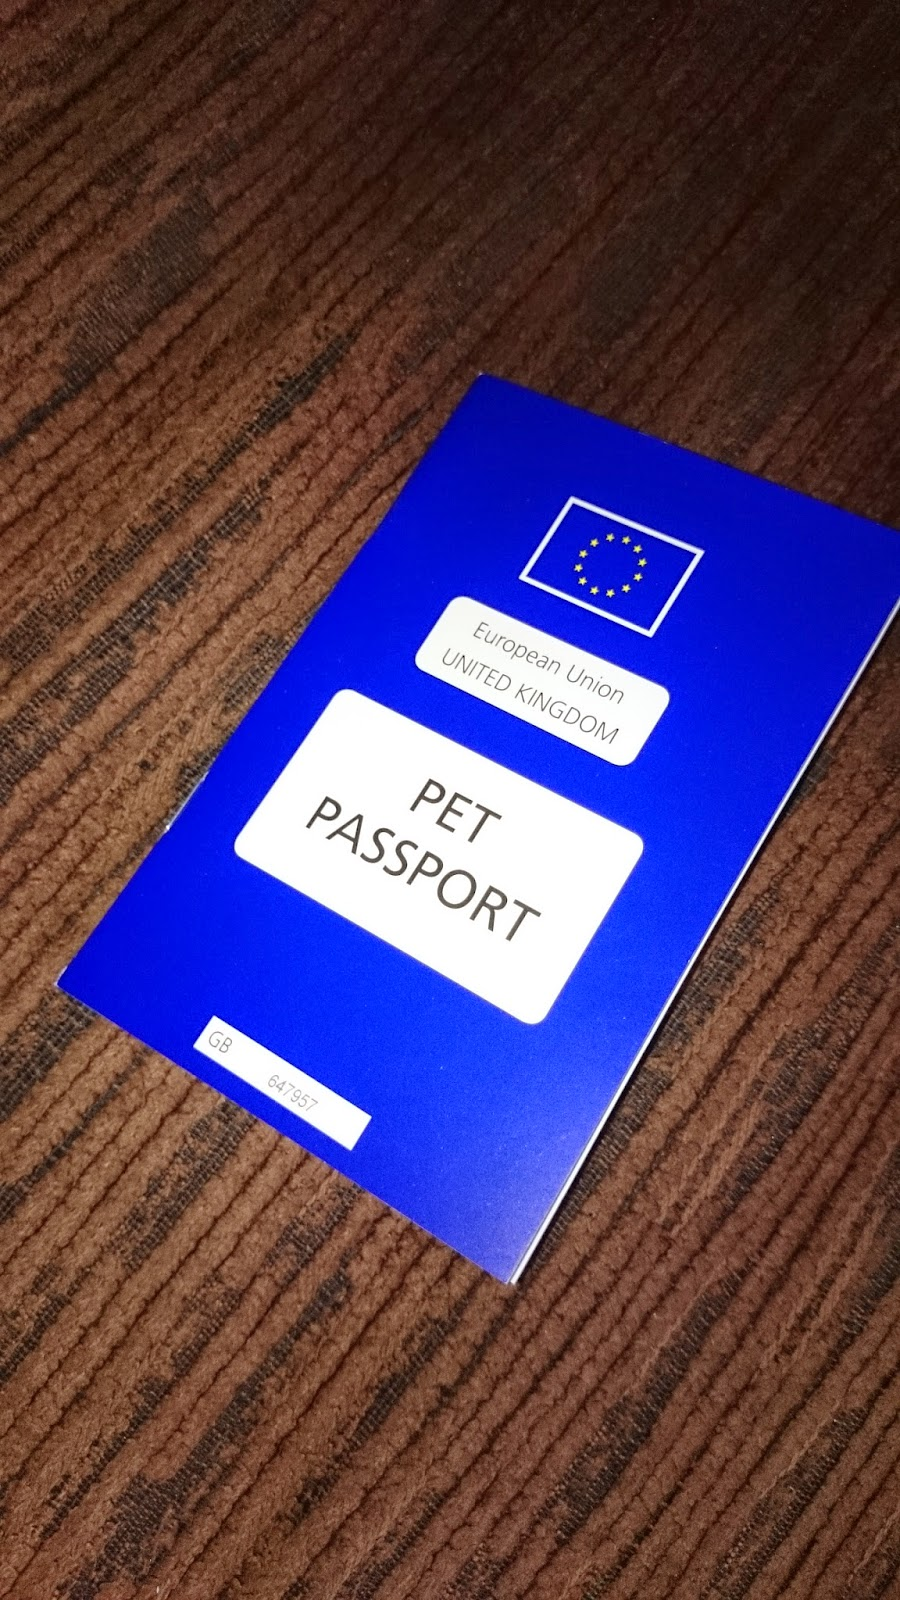 dog travel france europe pet passport vaccination microchip